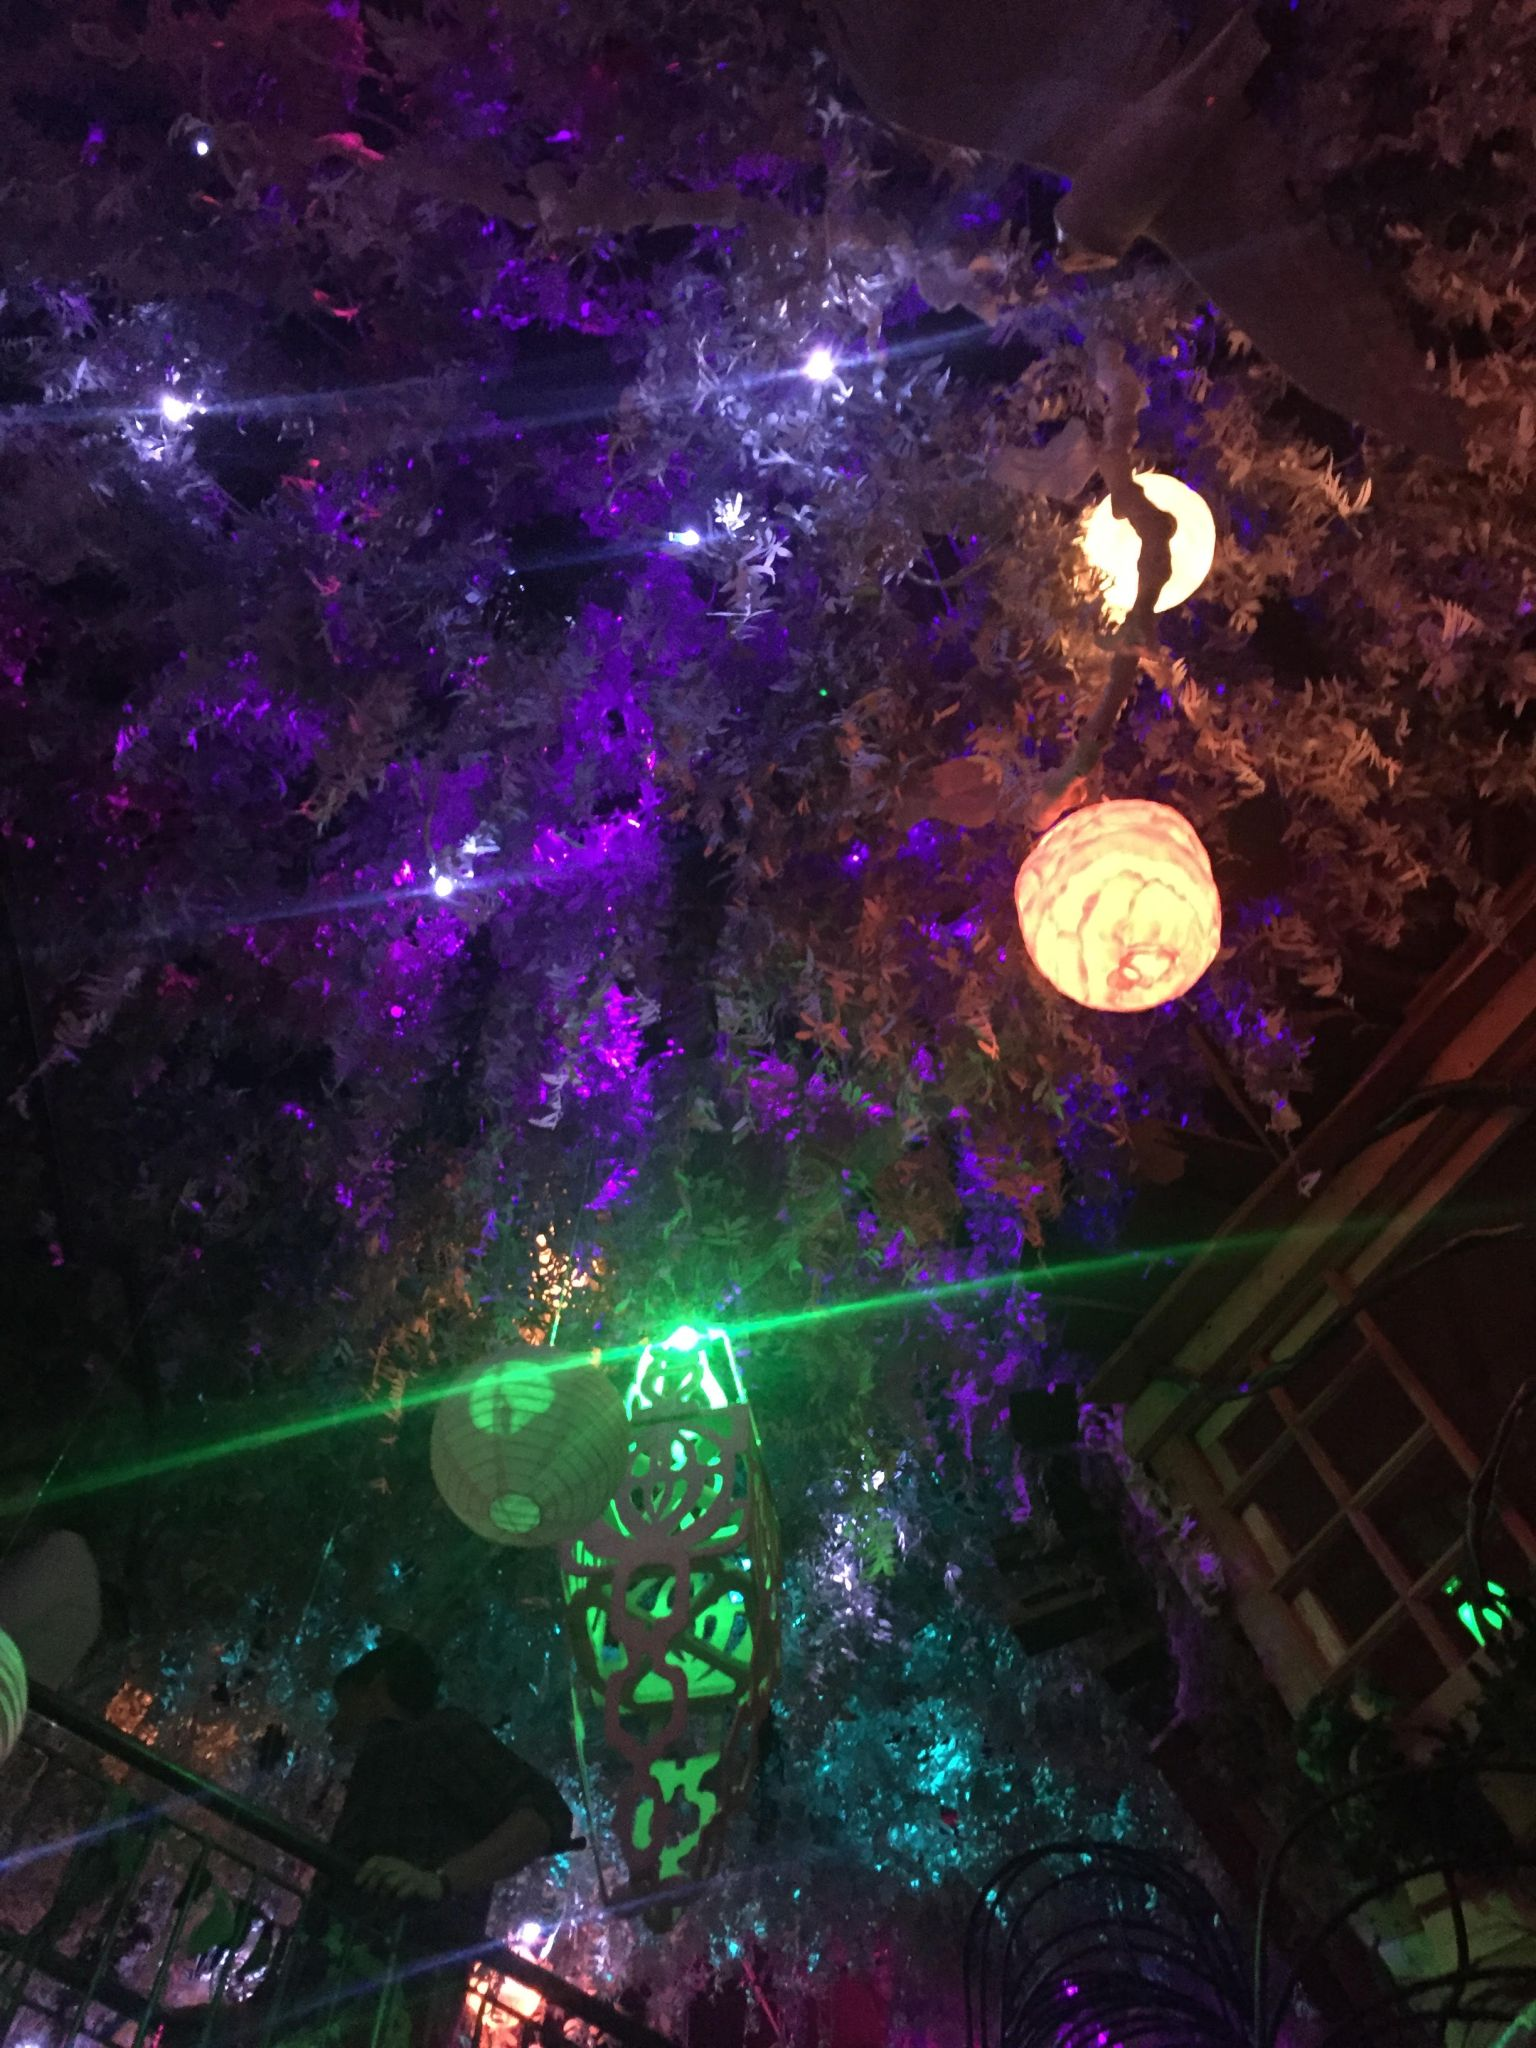 Lanterns light the way at Meow Wolf in Santa Fe.